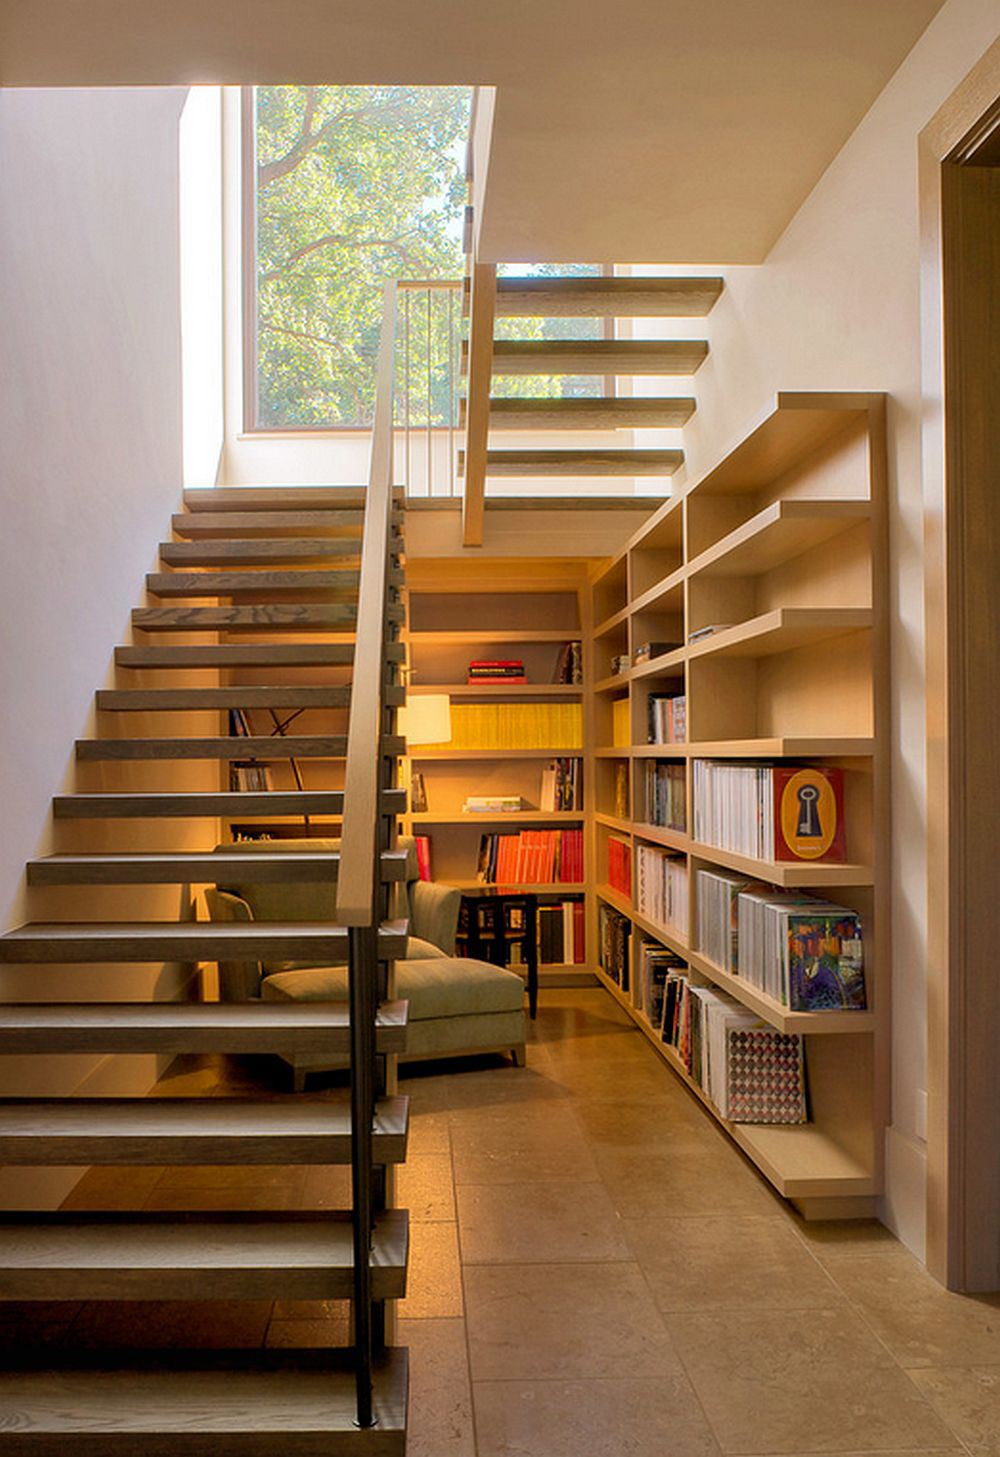 Staircase modern constructions types design for Staircases types